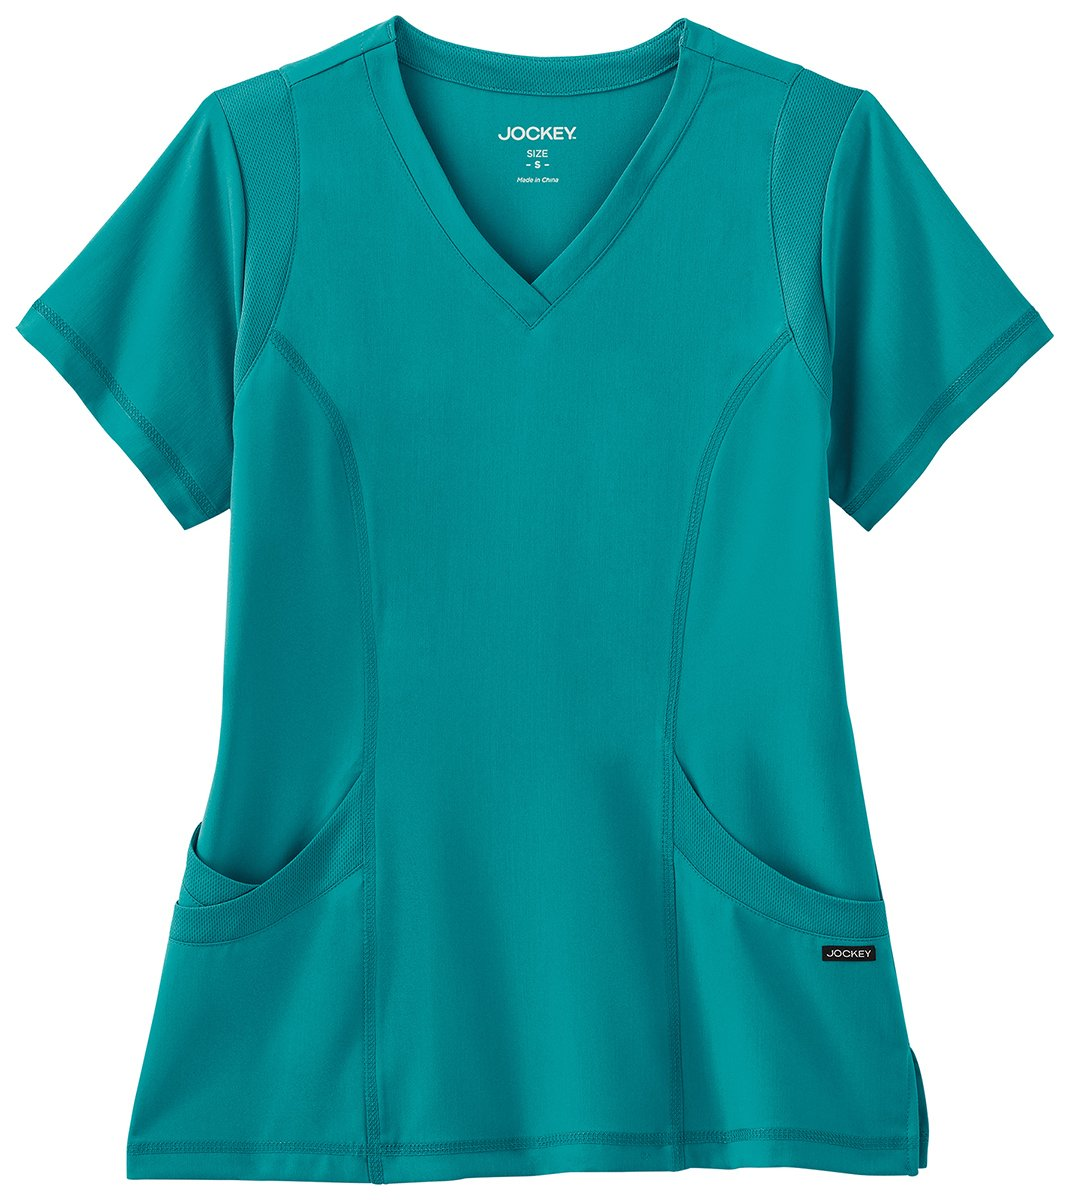 Modern Fit Collection By Jockey Women's Mesh Trim V-Neck Solid Scrub Top XXX-Large Teal